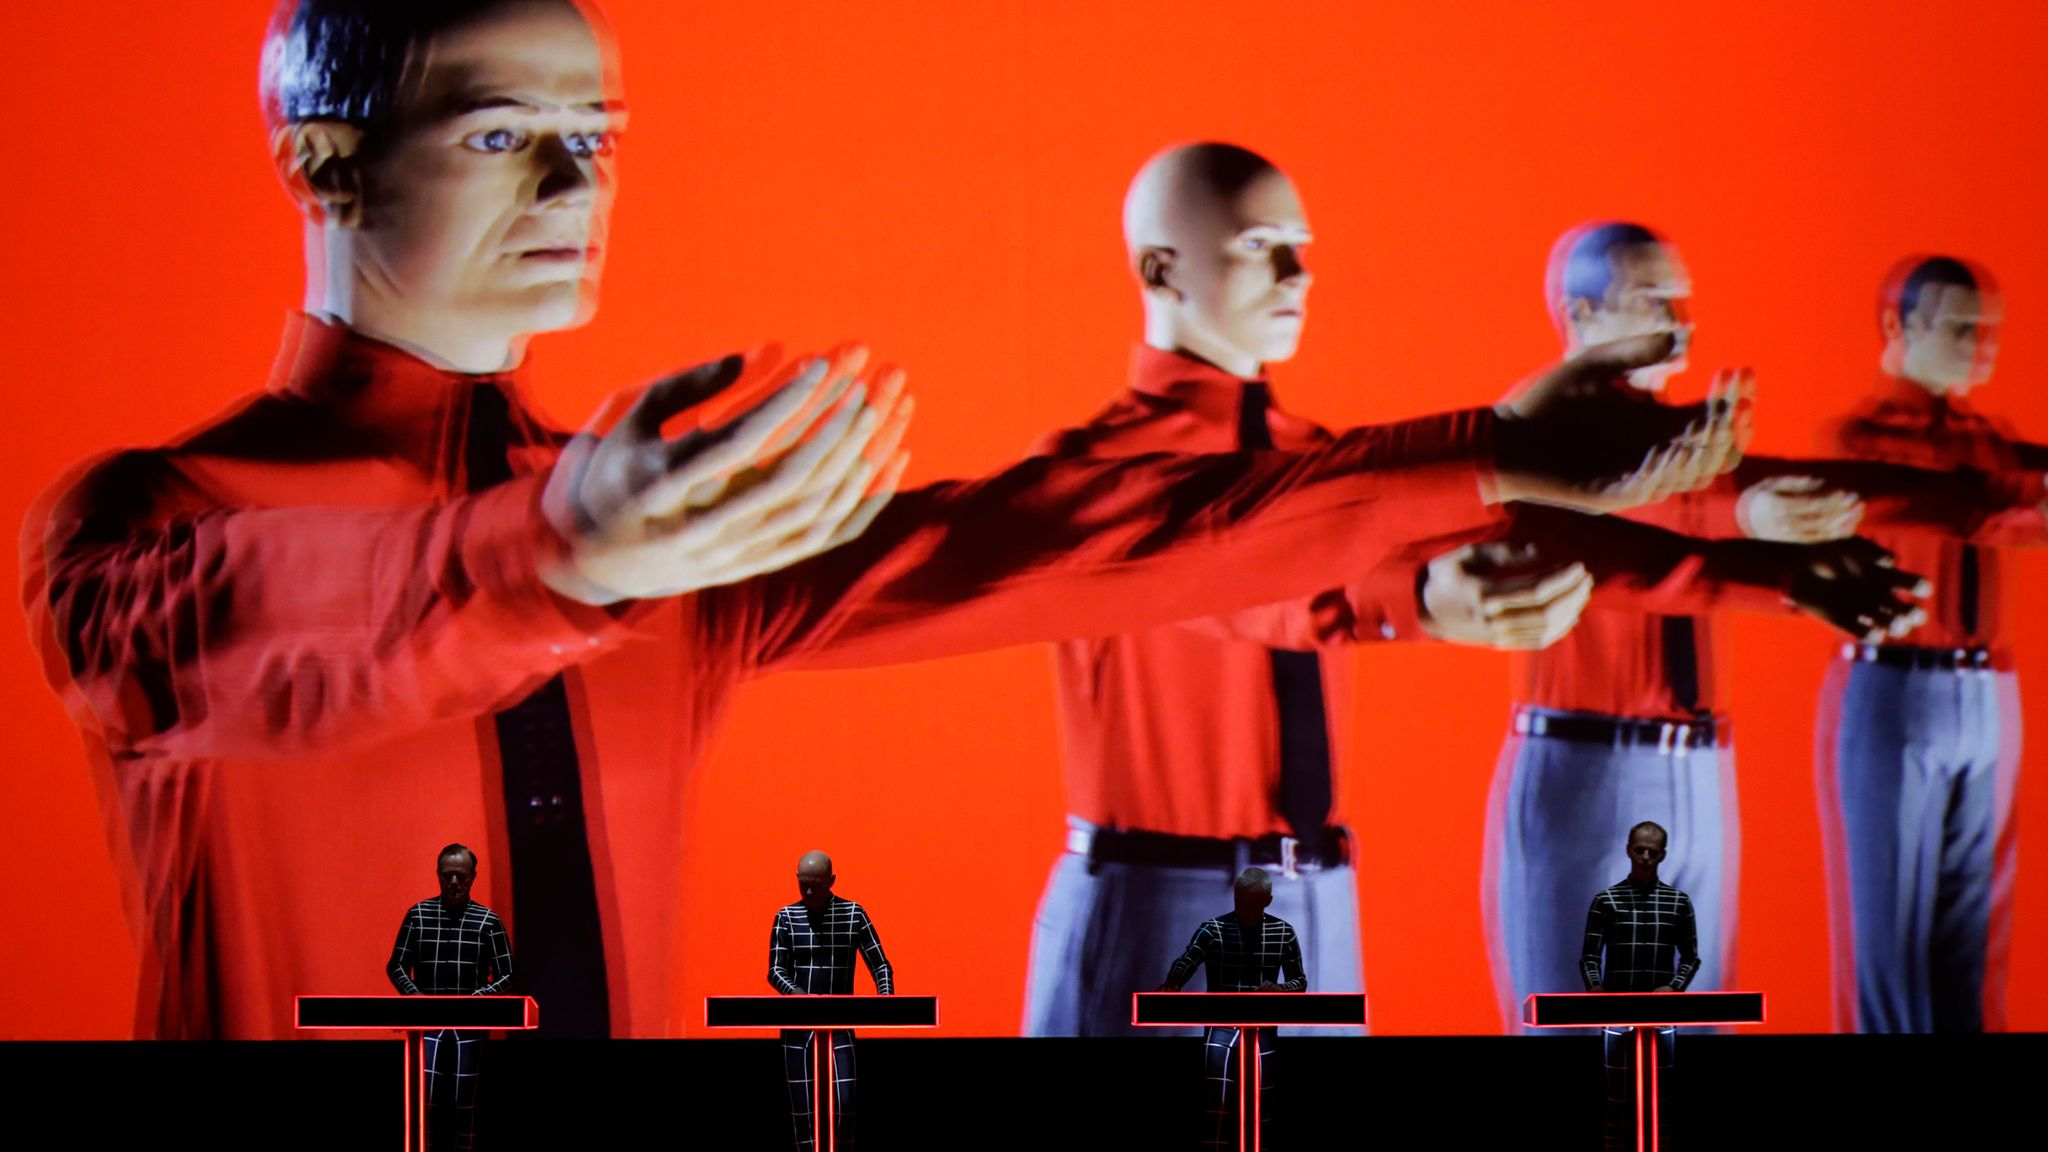 The groups continues to perform, with the visuals as important as the music